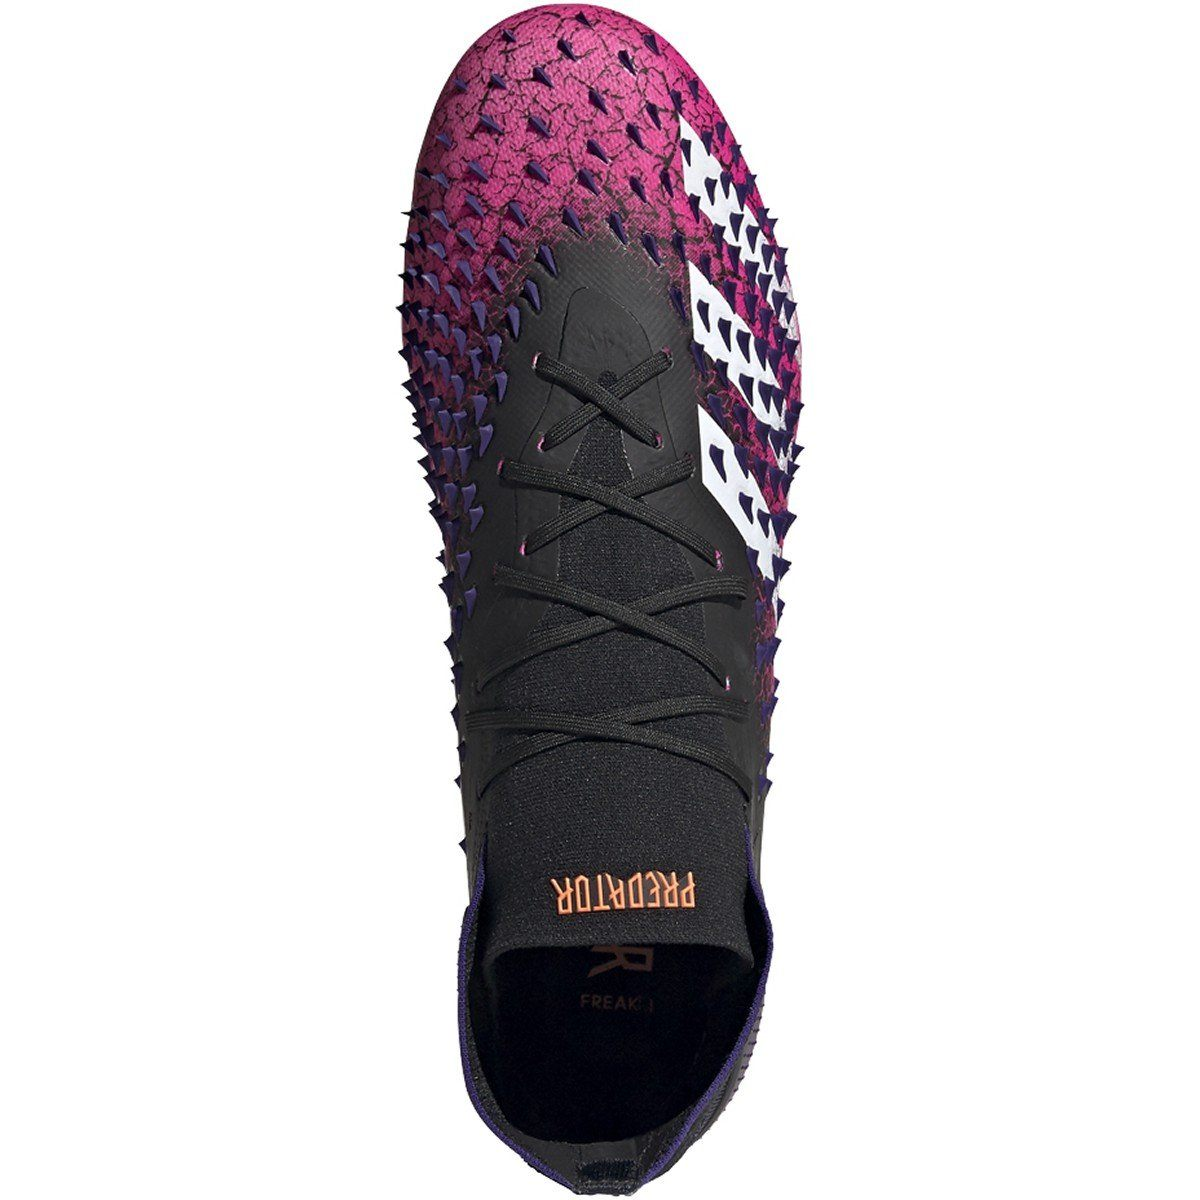 adidas Men's Predator Freak .1 Firm Ground Soccer Shoe | FW7241 Soccer Shoes Adidas 8.5 Core Black / Cloud White / Shock Pink